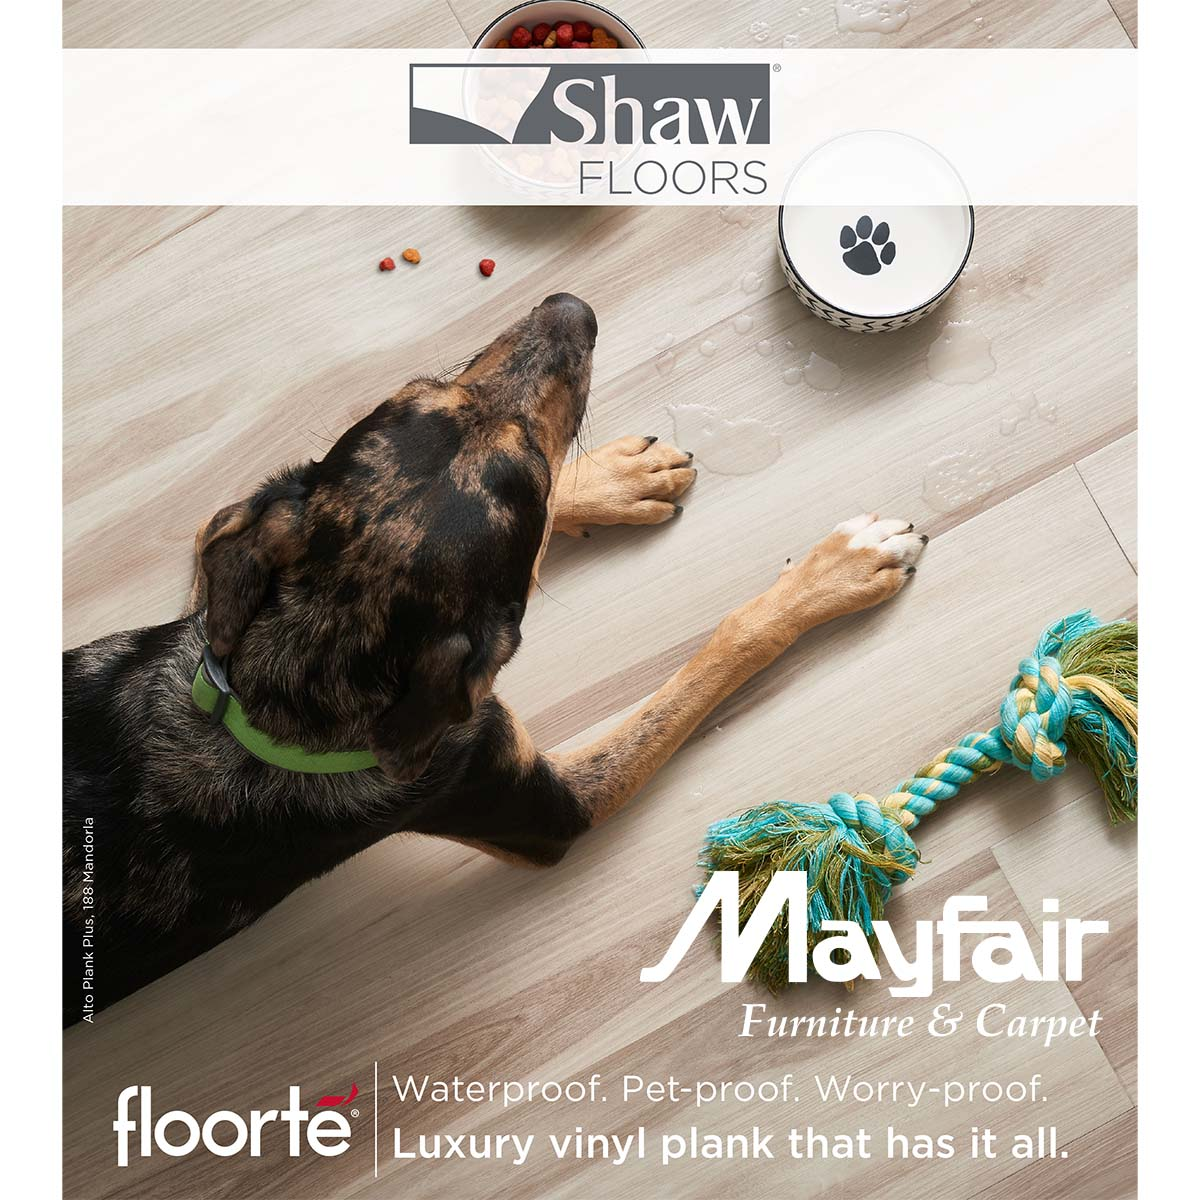 @MayfairHomeDeco Offers Floorte Floors Which Have Waterproof Qualities.  This Is Ideal For High Moisture Areas Like Basements, Bathrooms, U0026 Mudrooms.